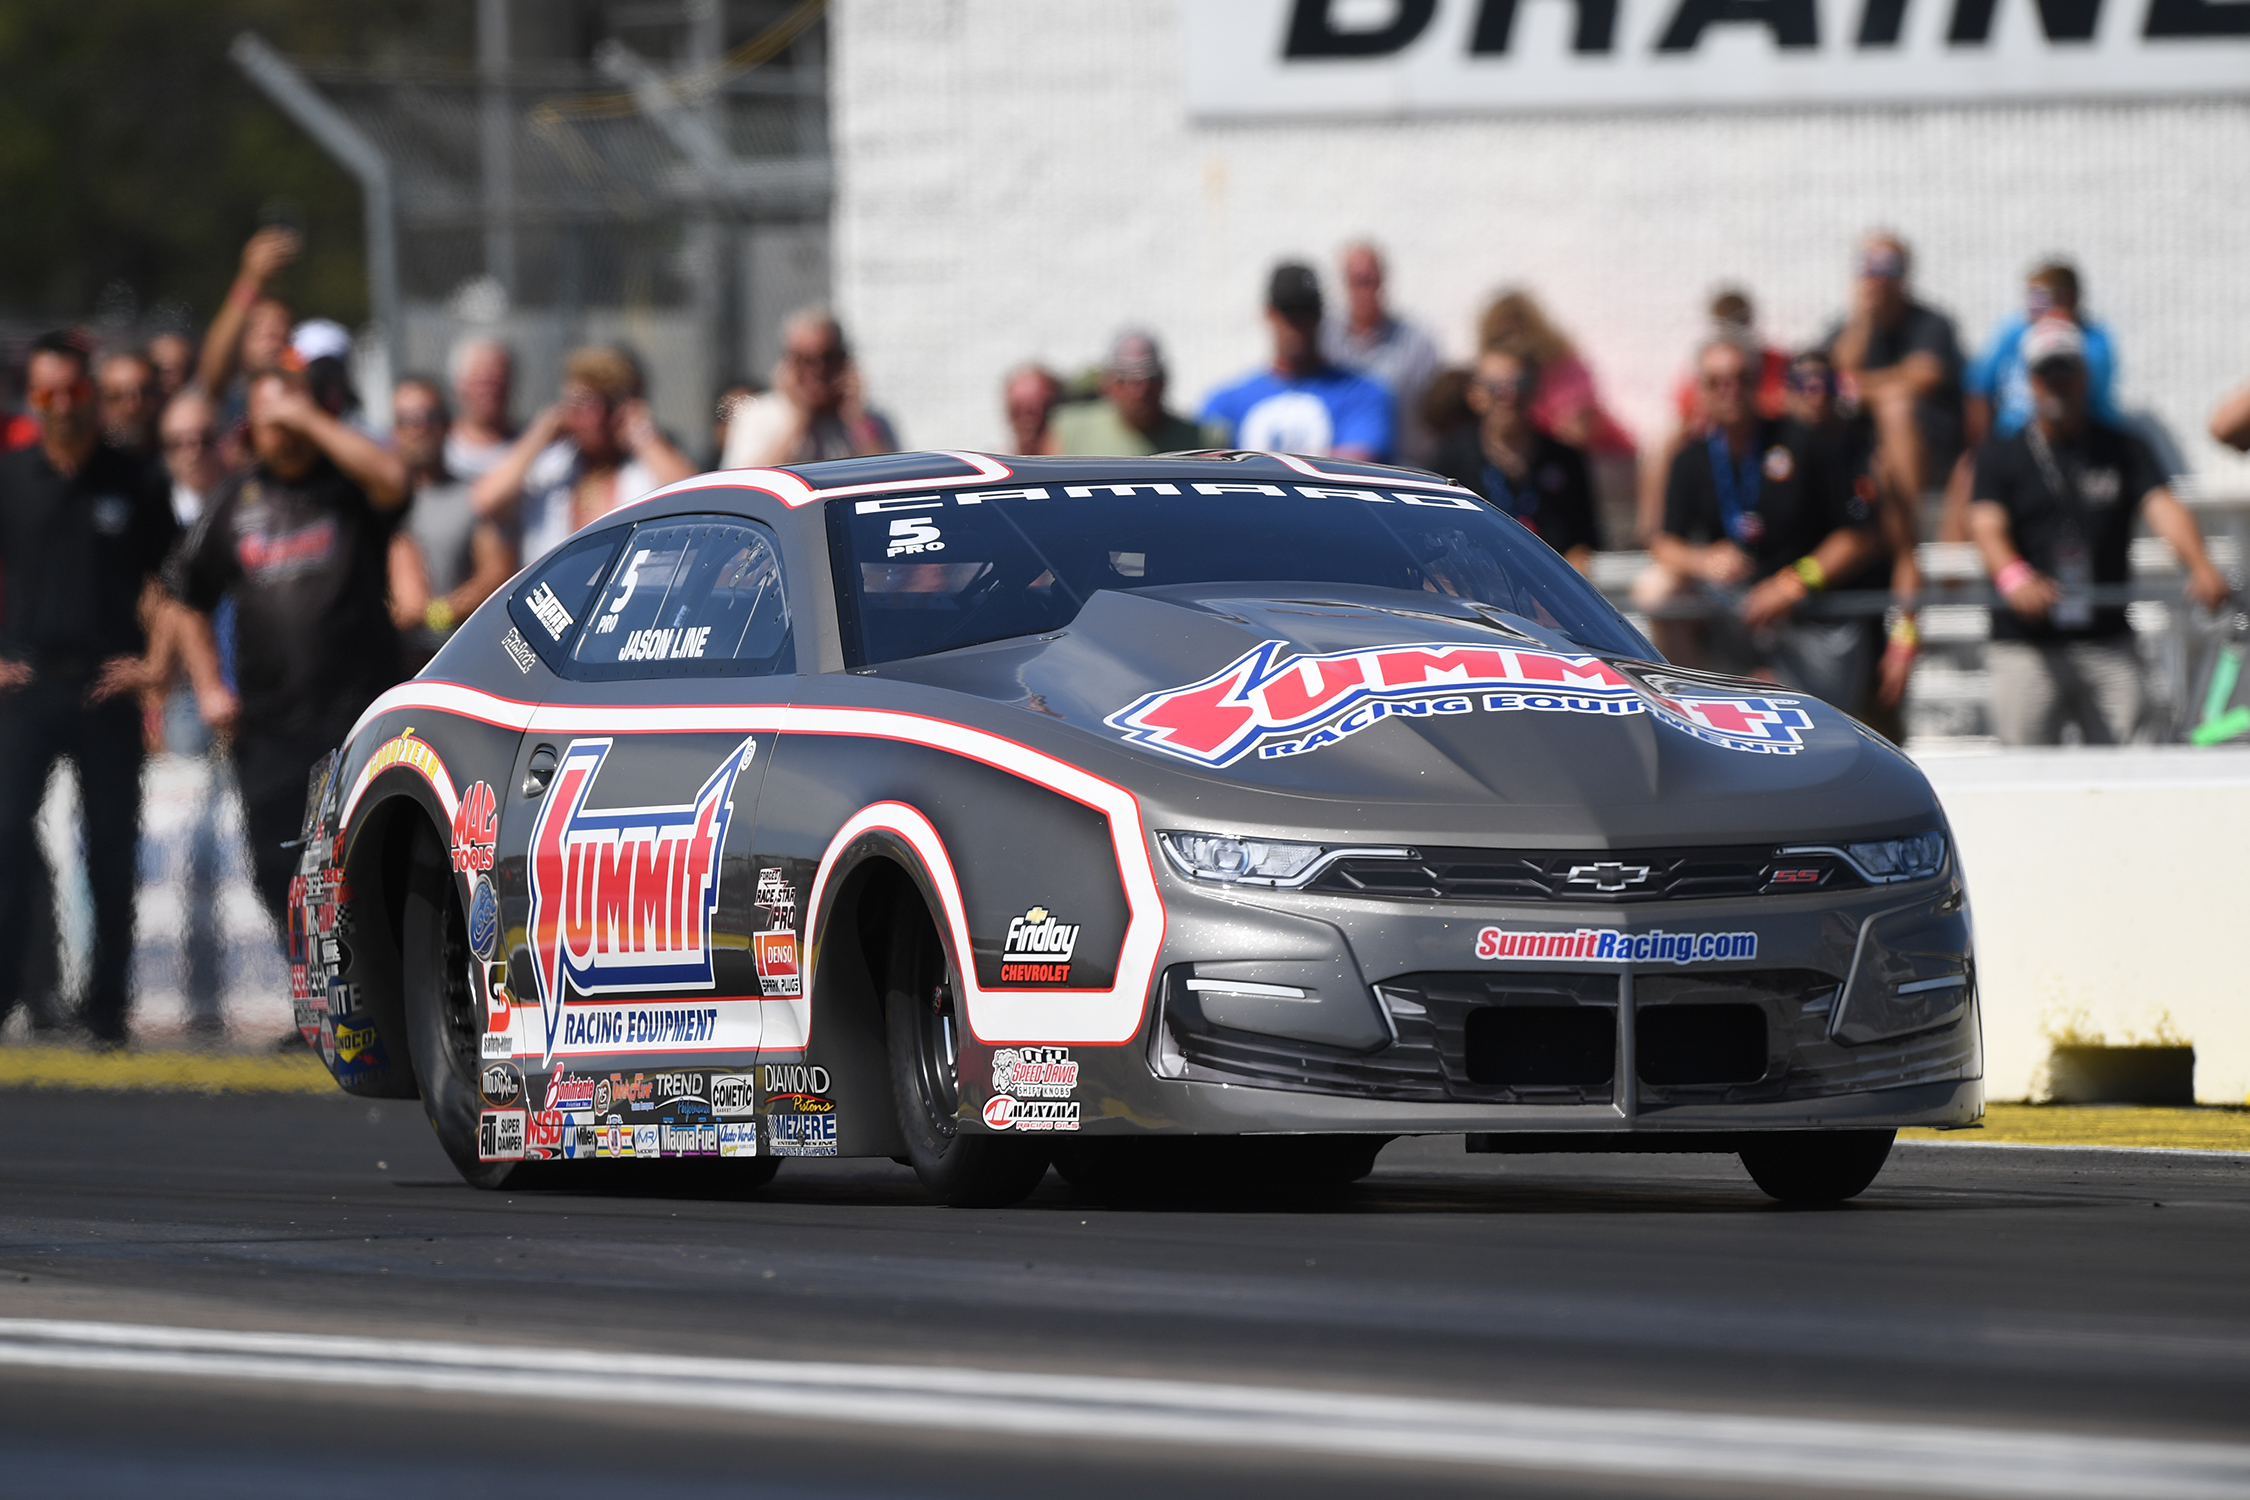 Pro Stock driver Jason Line racing on Saturday at the 2019 Lucas Oil NHRA Nationals